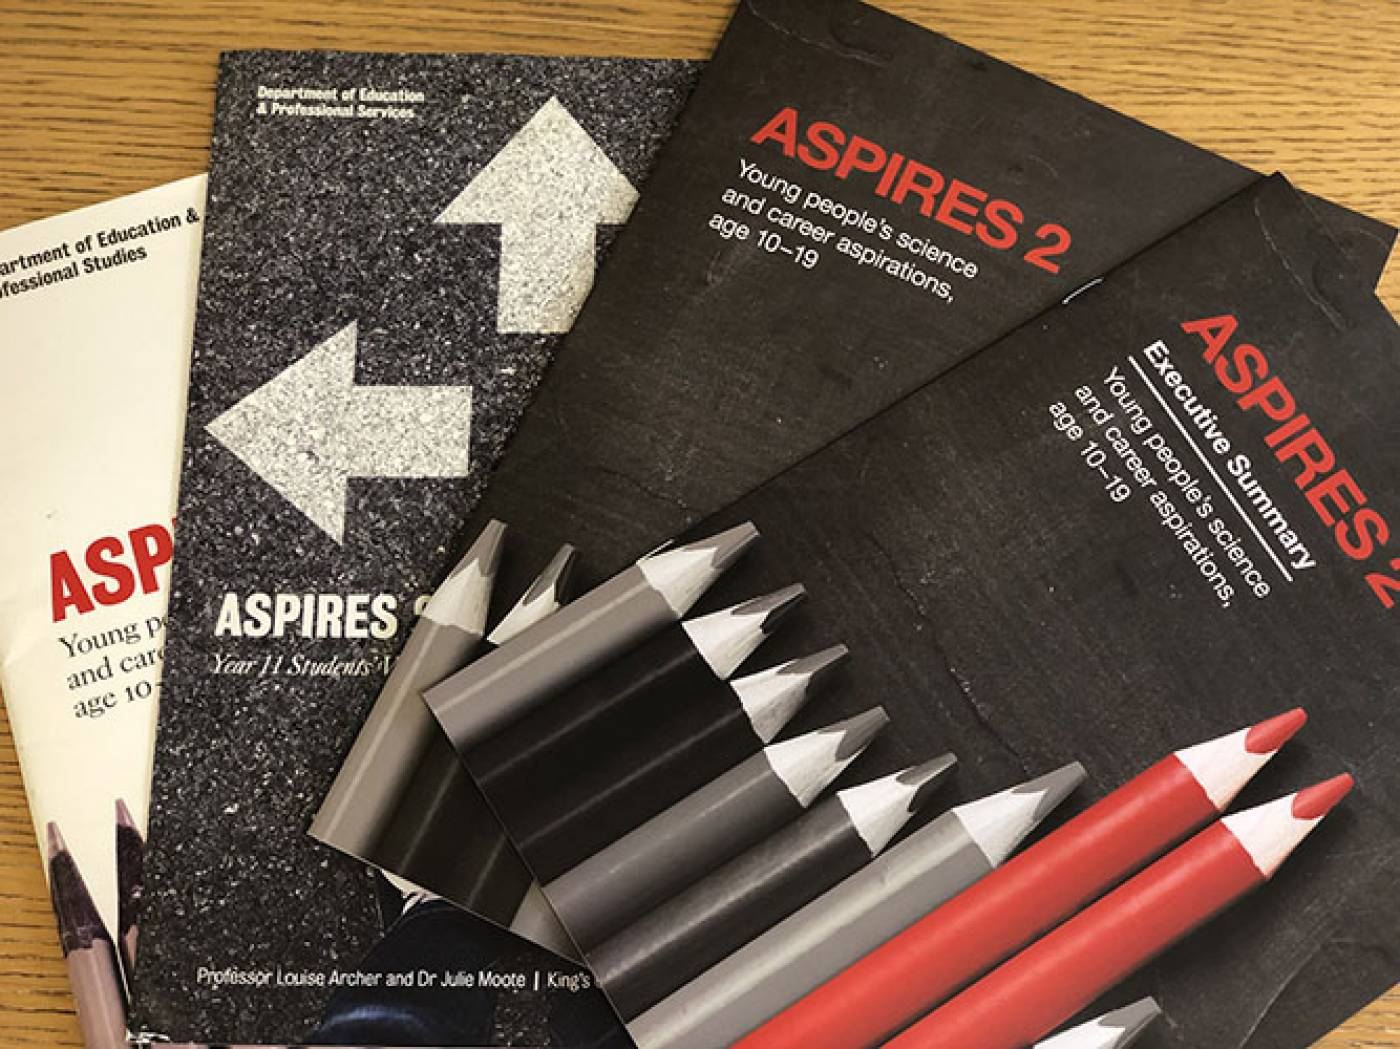 ASPIRES project reports. Image: Julie Moote for UCL Institute of Education